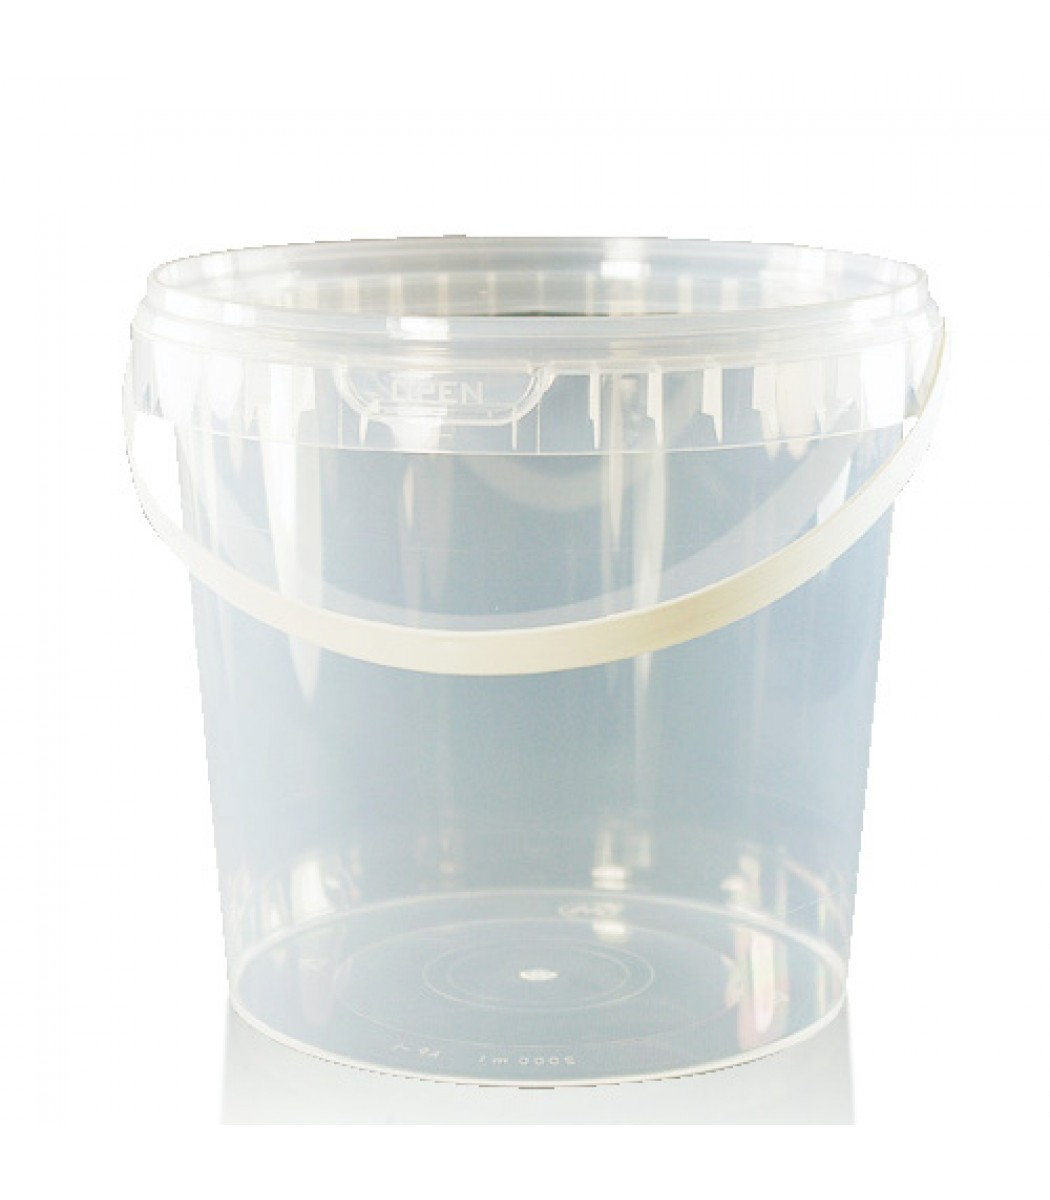 2 Litre Clear Plastic Food Tub With Handle